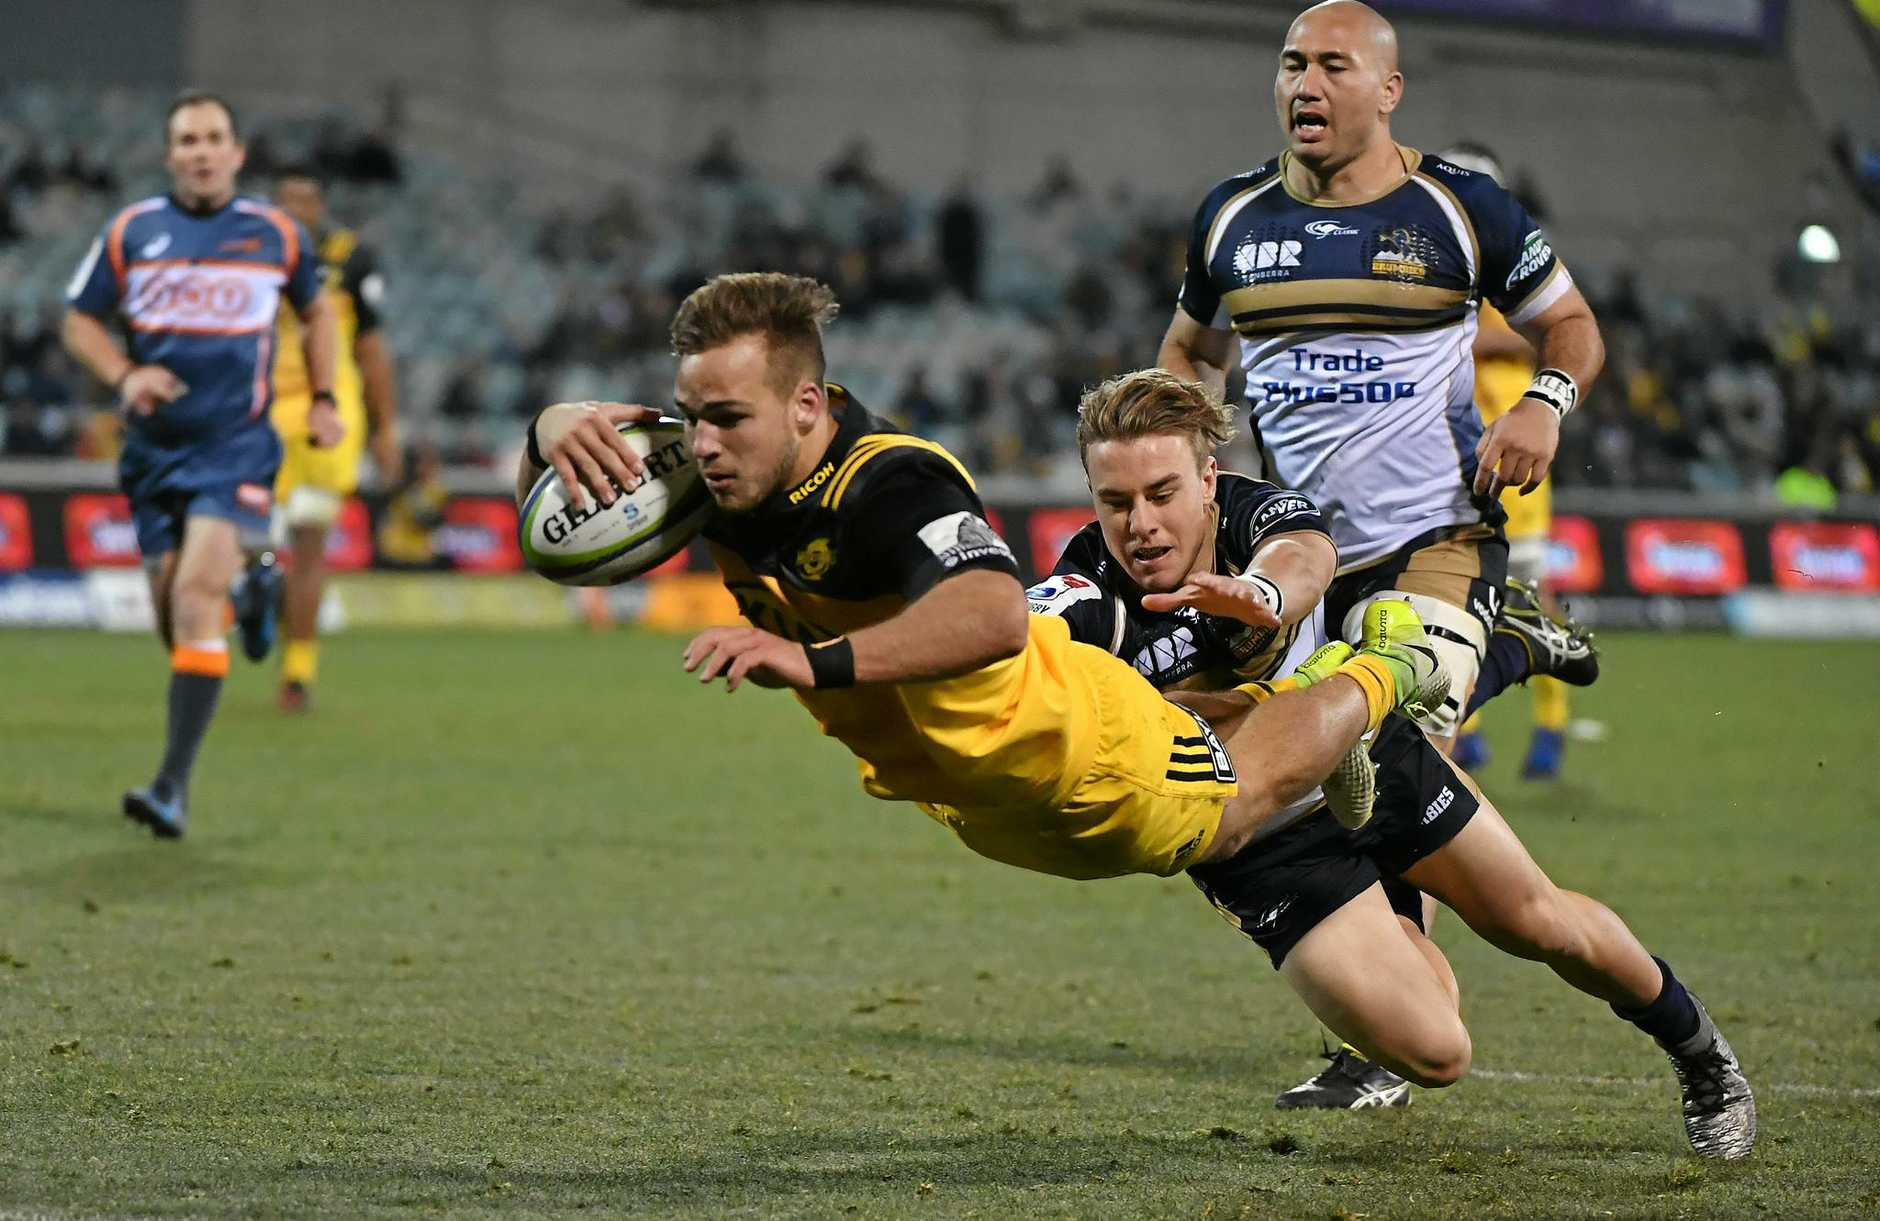 Wes Goosen of the Hurricanes scores a try during the quarterfinal Super Rugby match between the Brumbies and the Wellington Hurricanes at GIO Stadium in Canberra, Friday, July 21, 2017. (AAP Image/Mick Tsikas) NO ARCHIVING, EDITORIAL USE ONLY